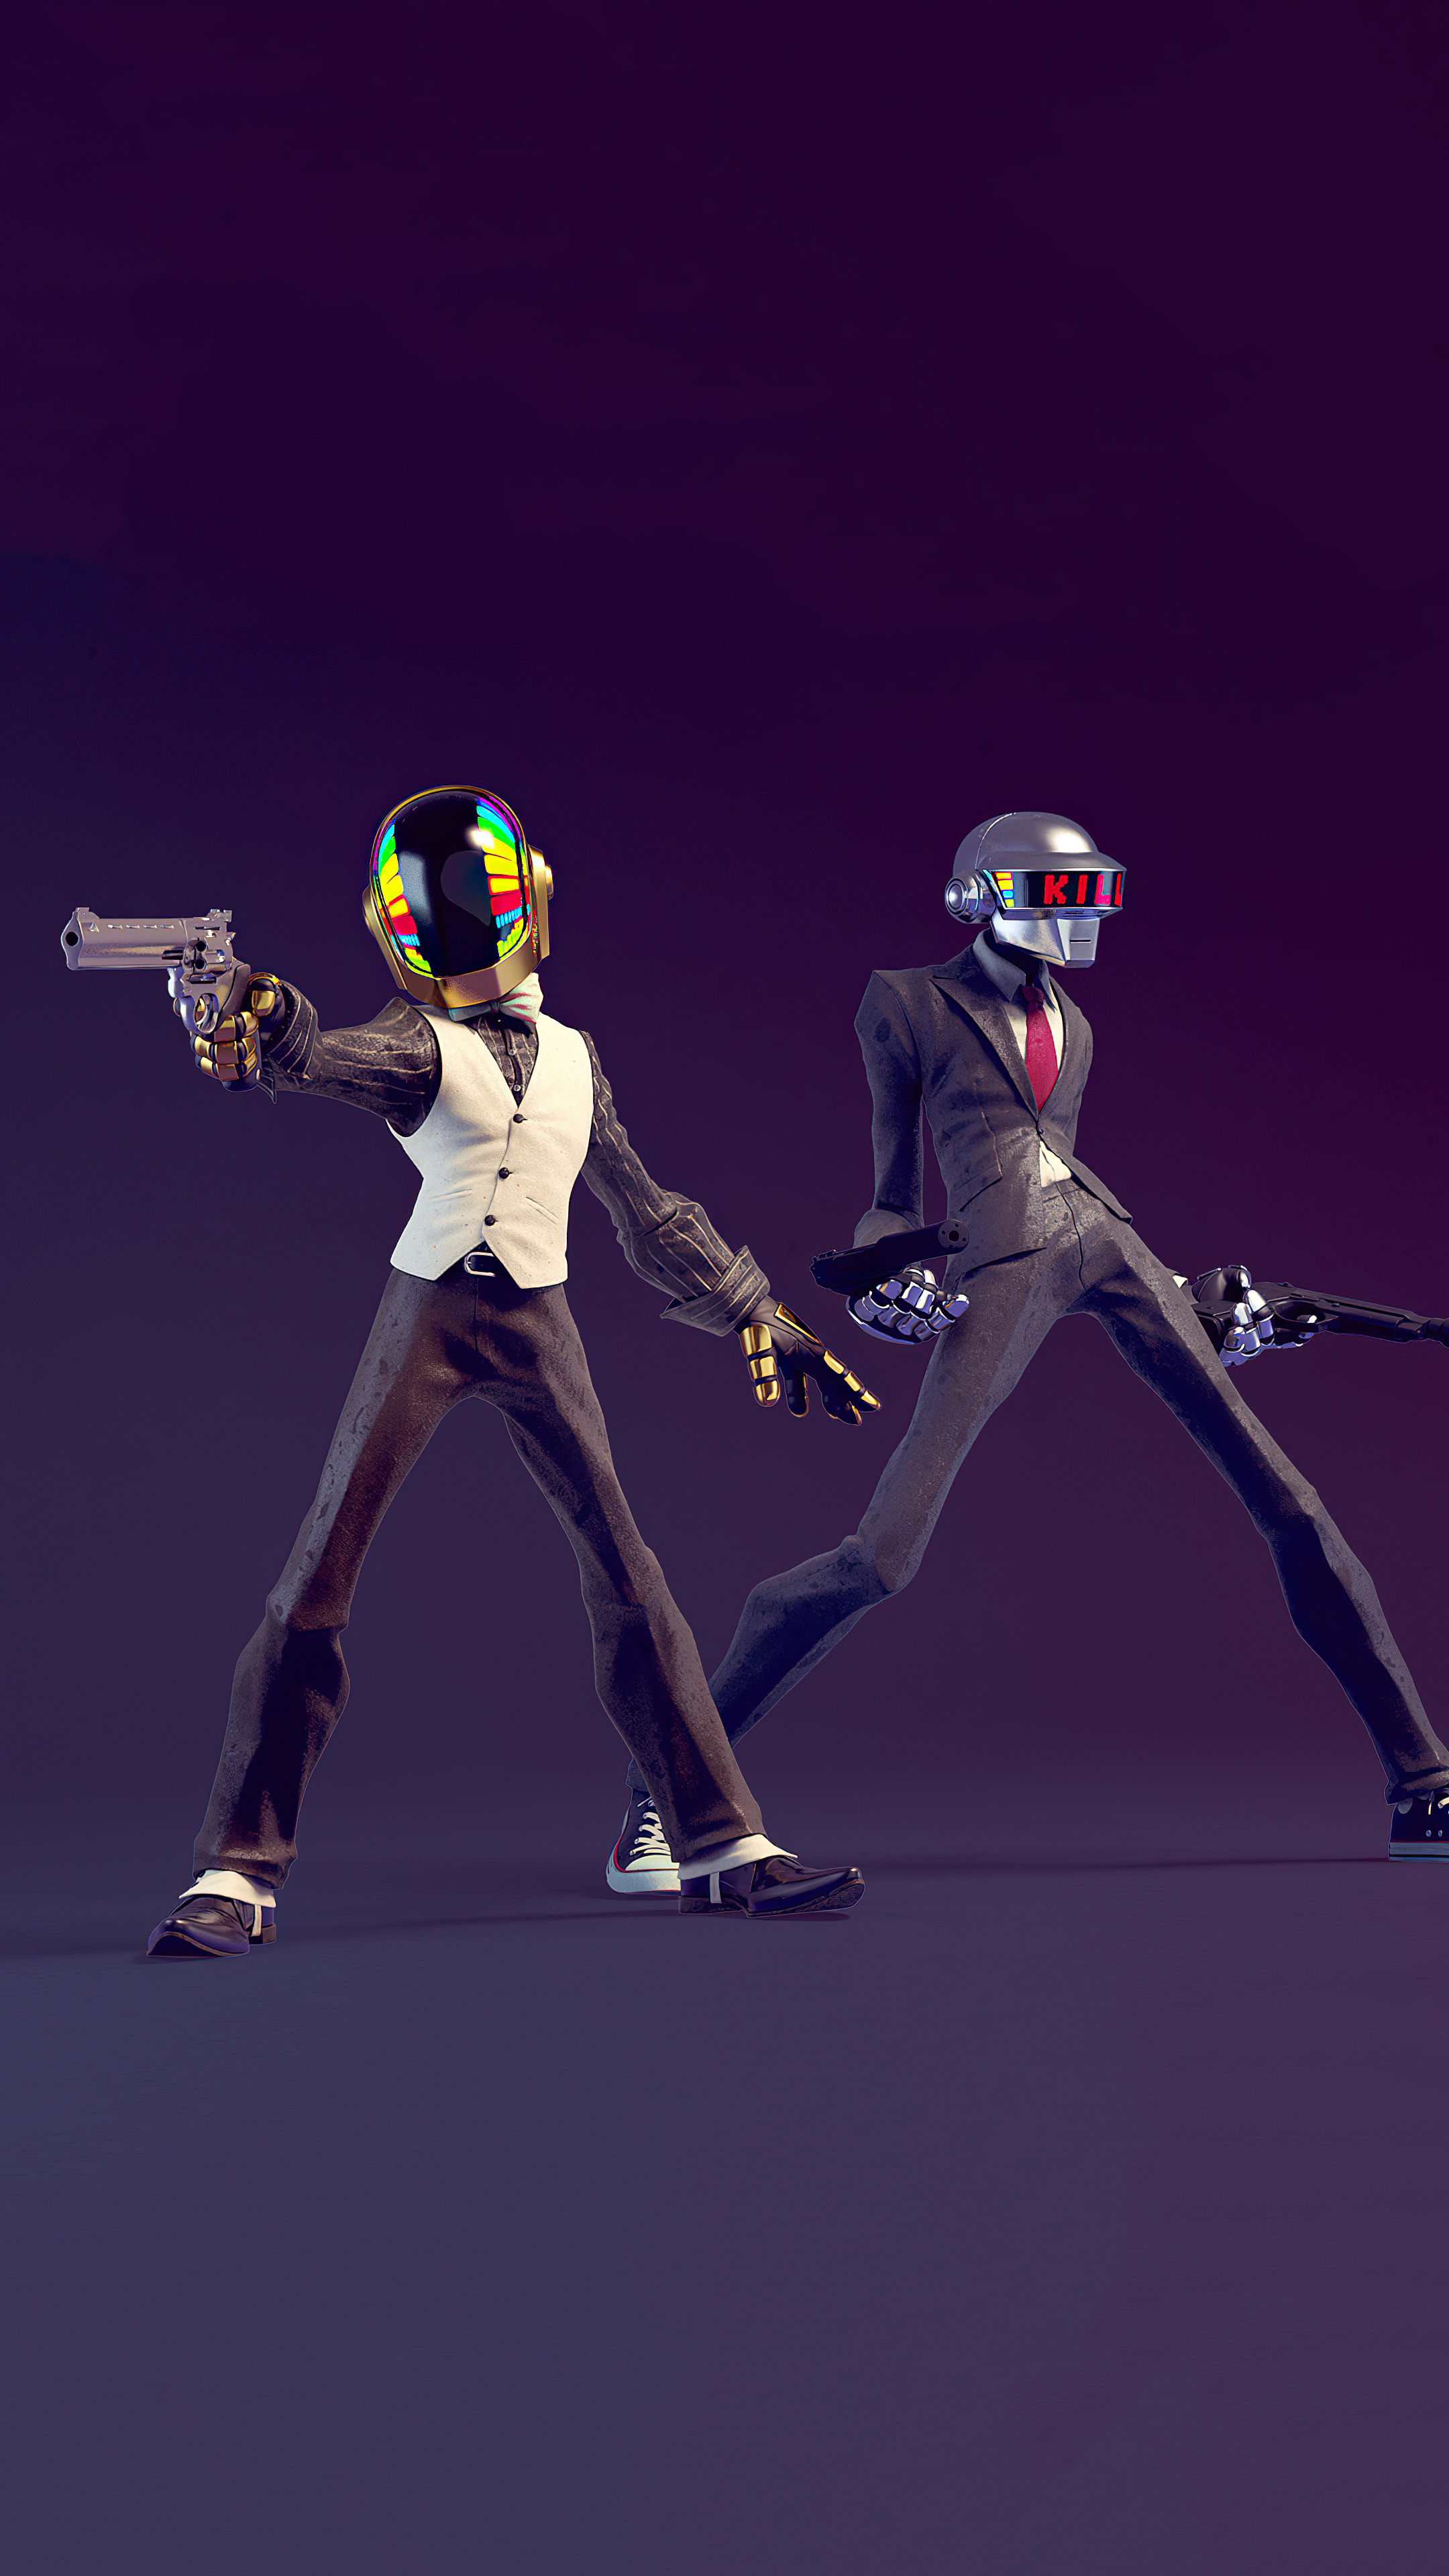 2160x3840 Daft Punk Do You Feel Lucky 4k Sony Xperia X,XZ ...